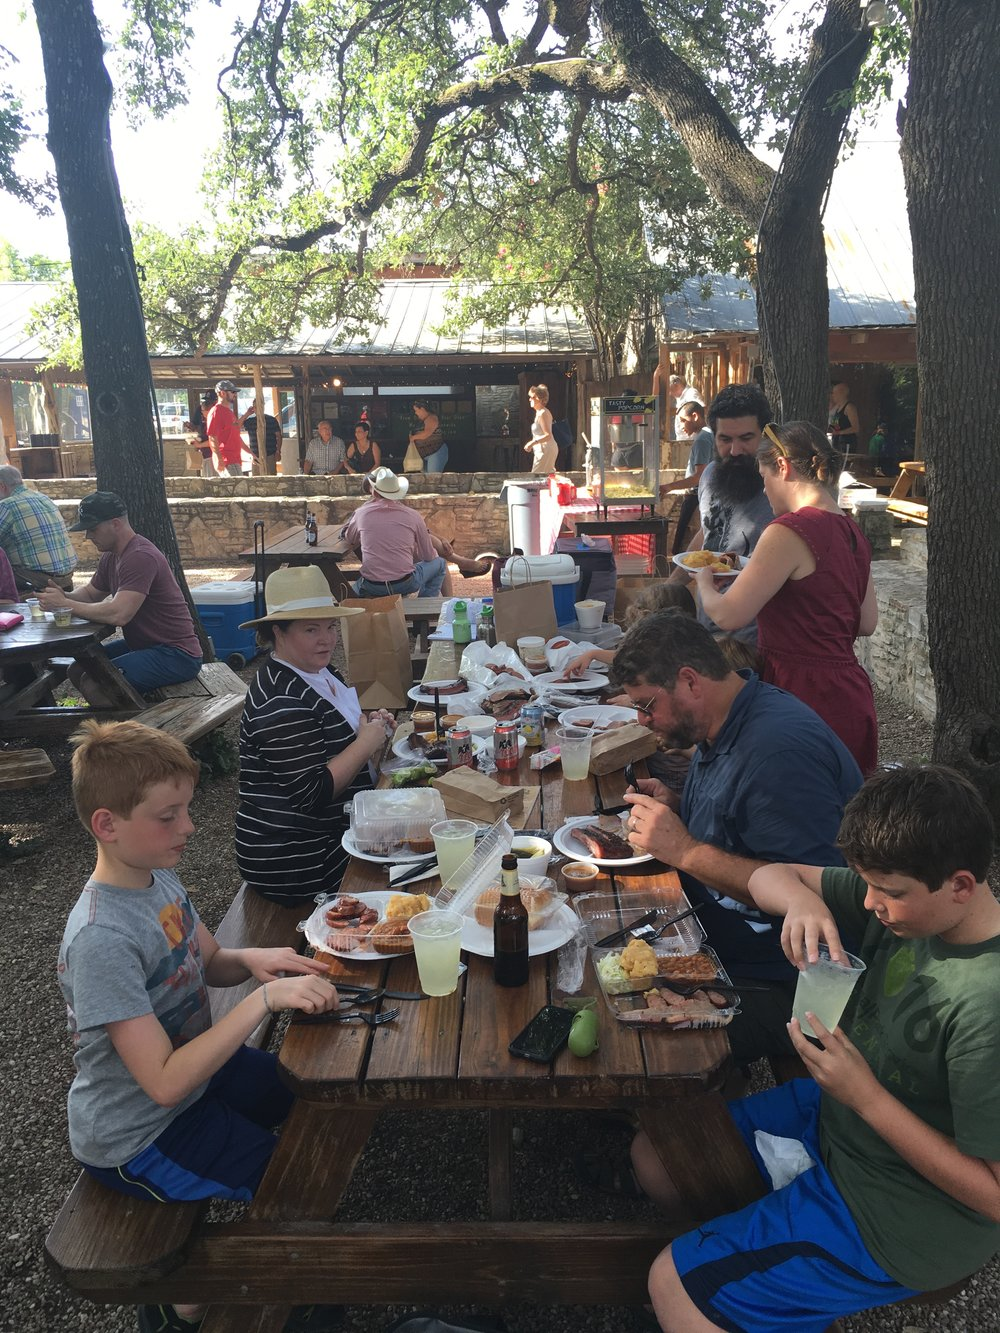 Chowing down, again, this time at The Salt Lick.